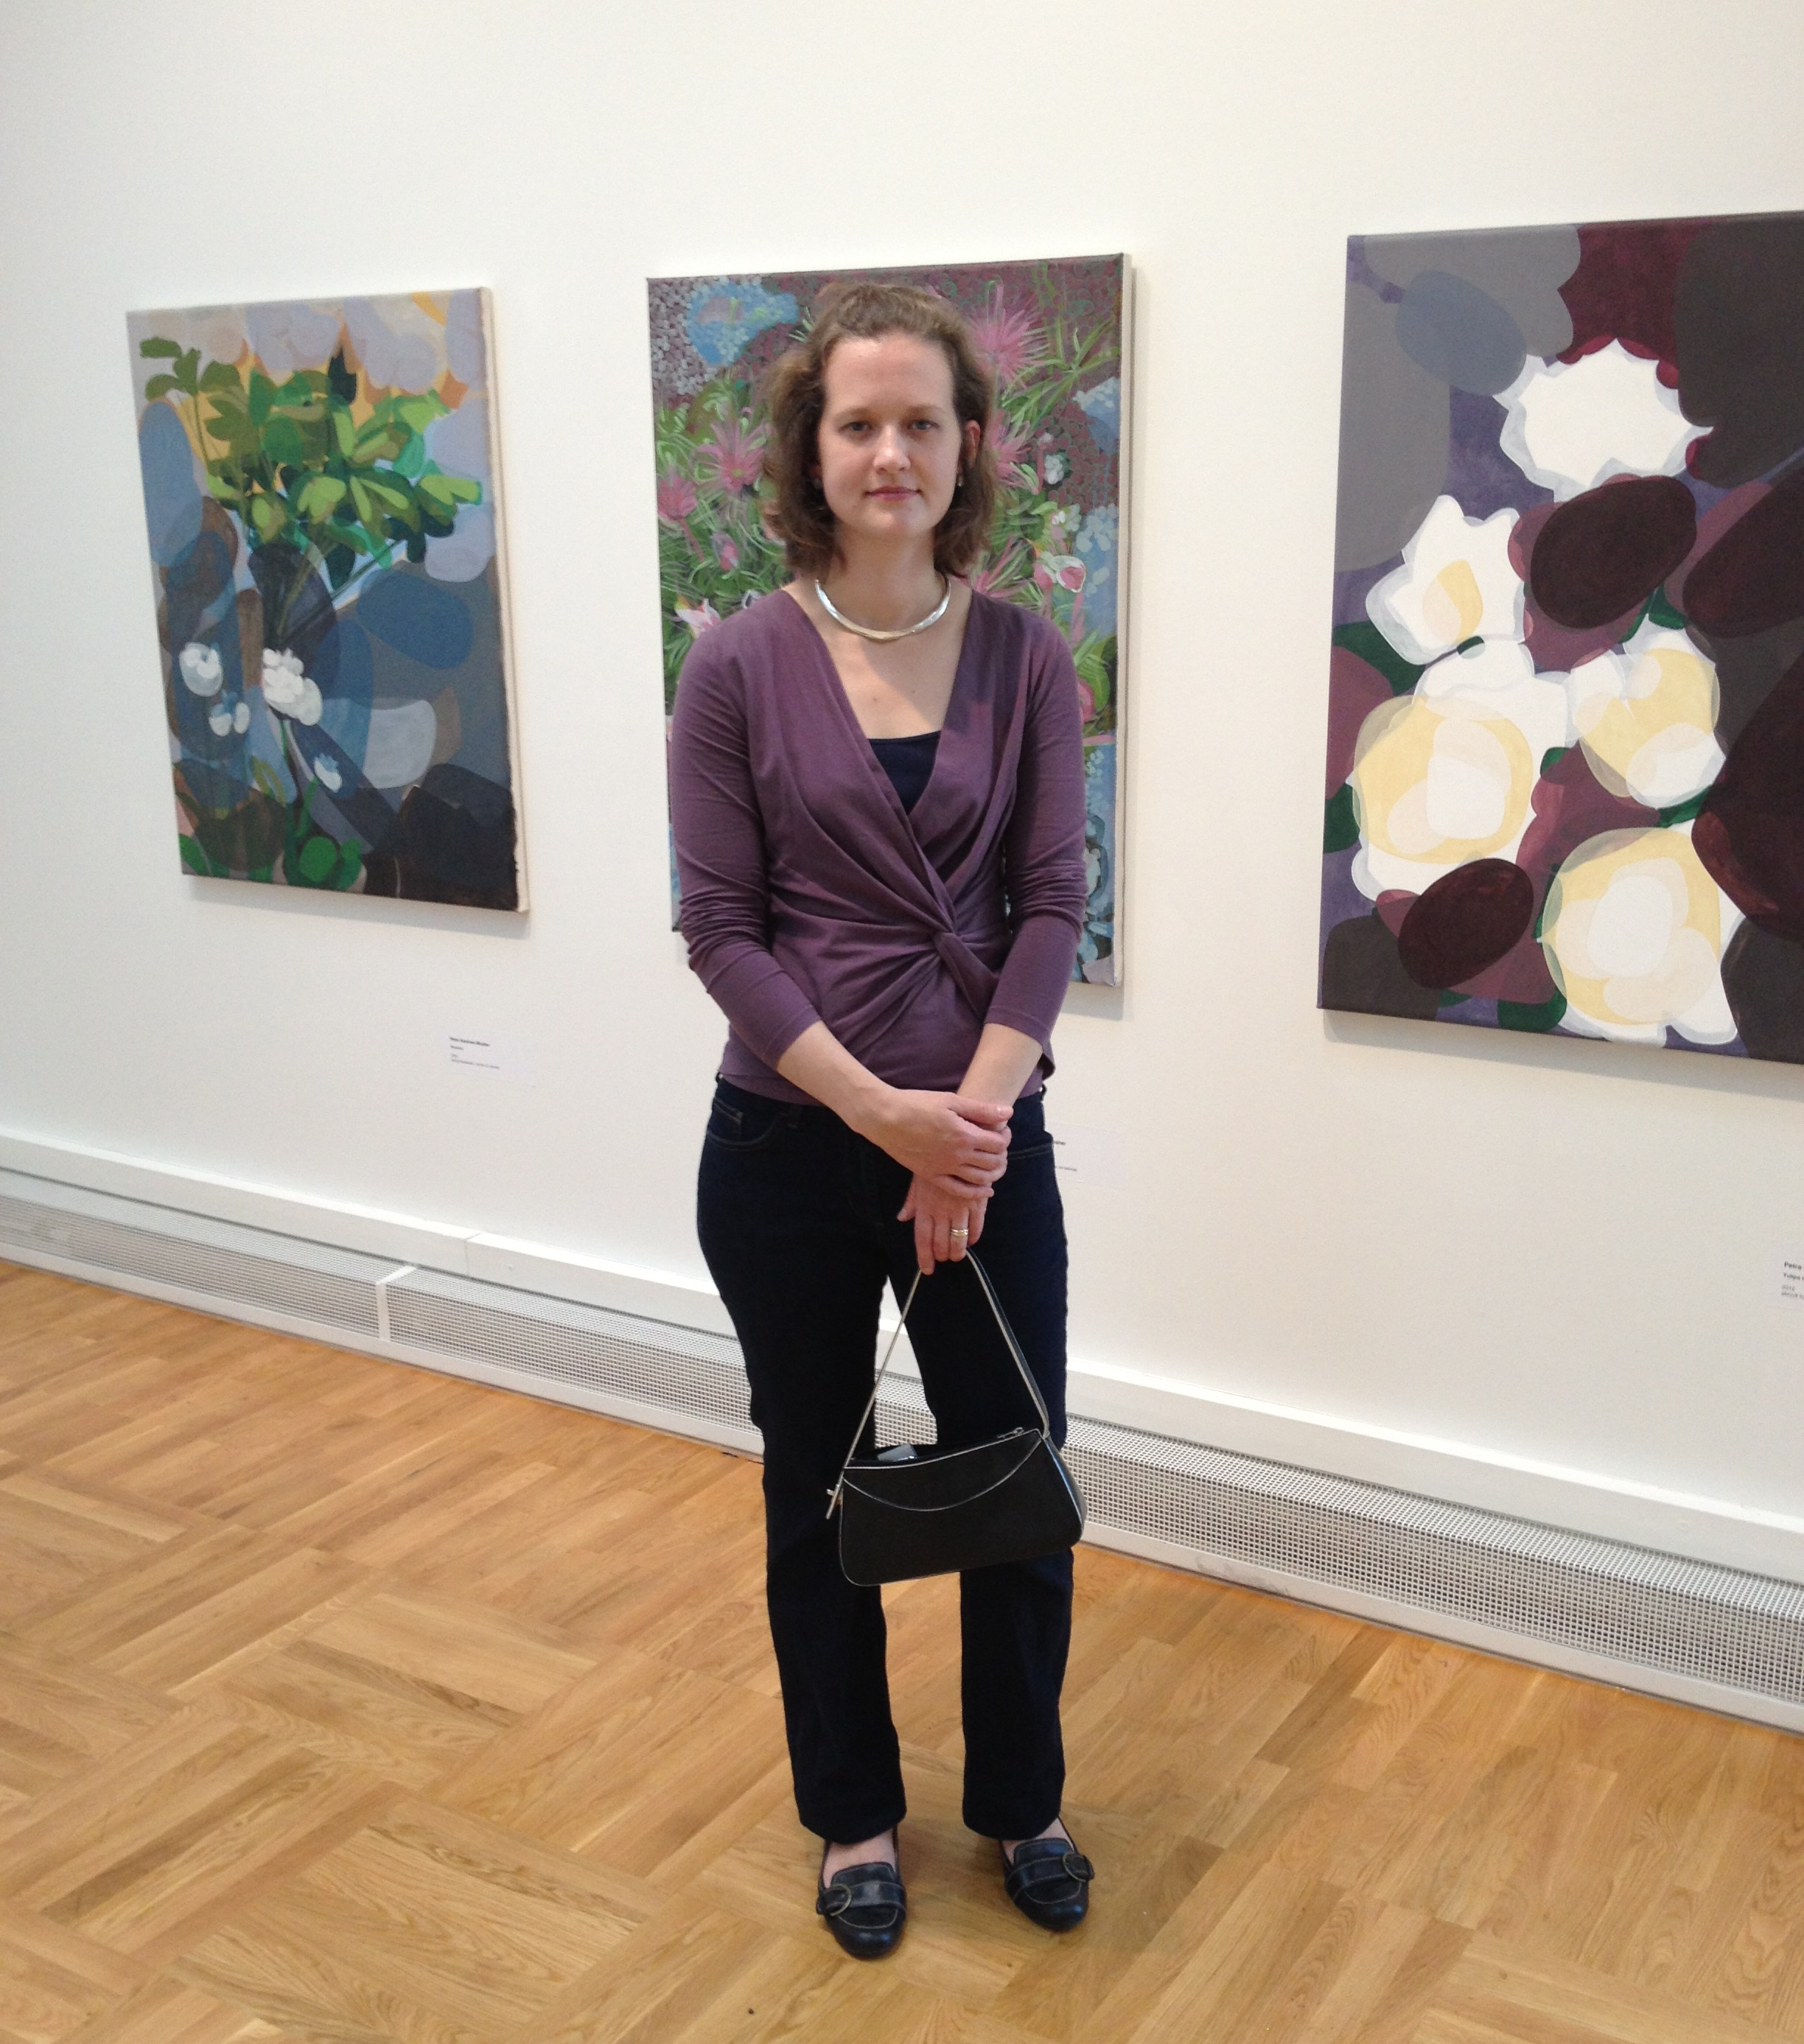 Artist infront of Paintings